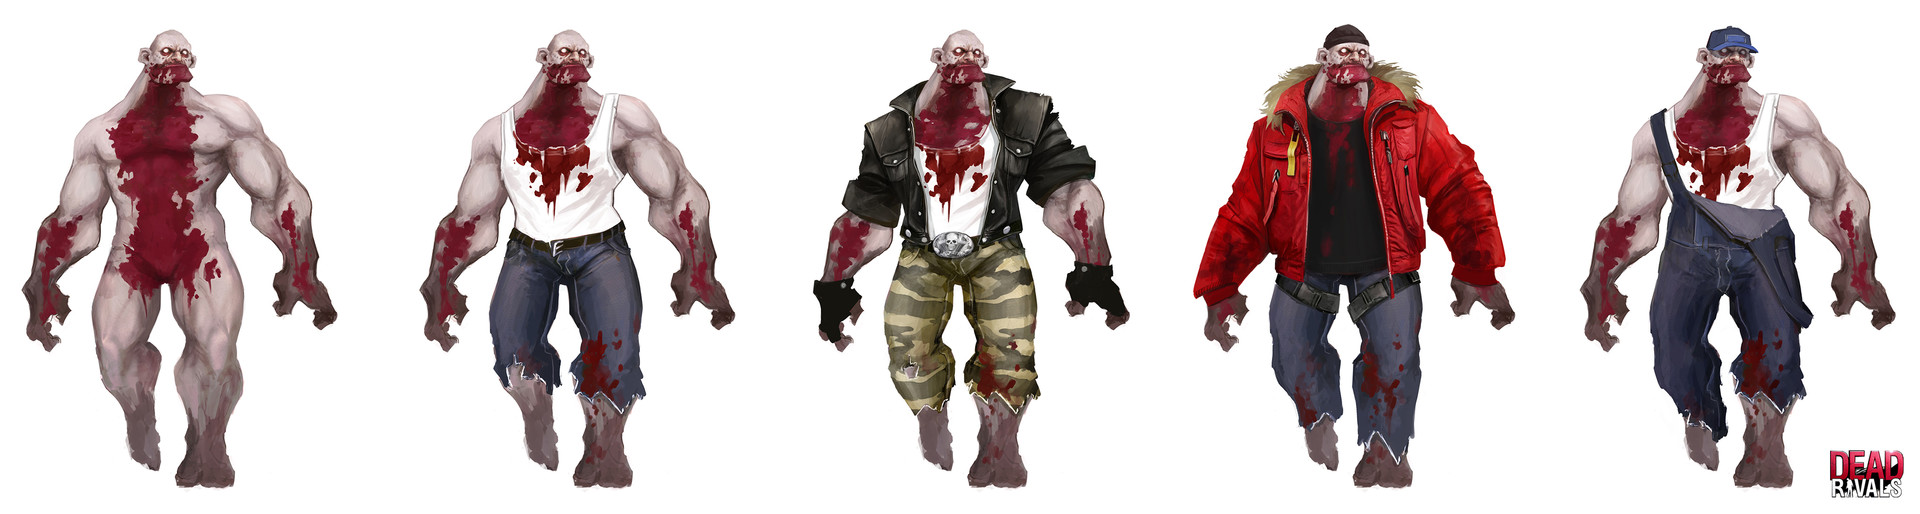 Alexandre chaudret dw characters zombies variation02